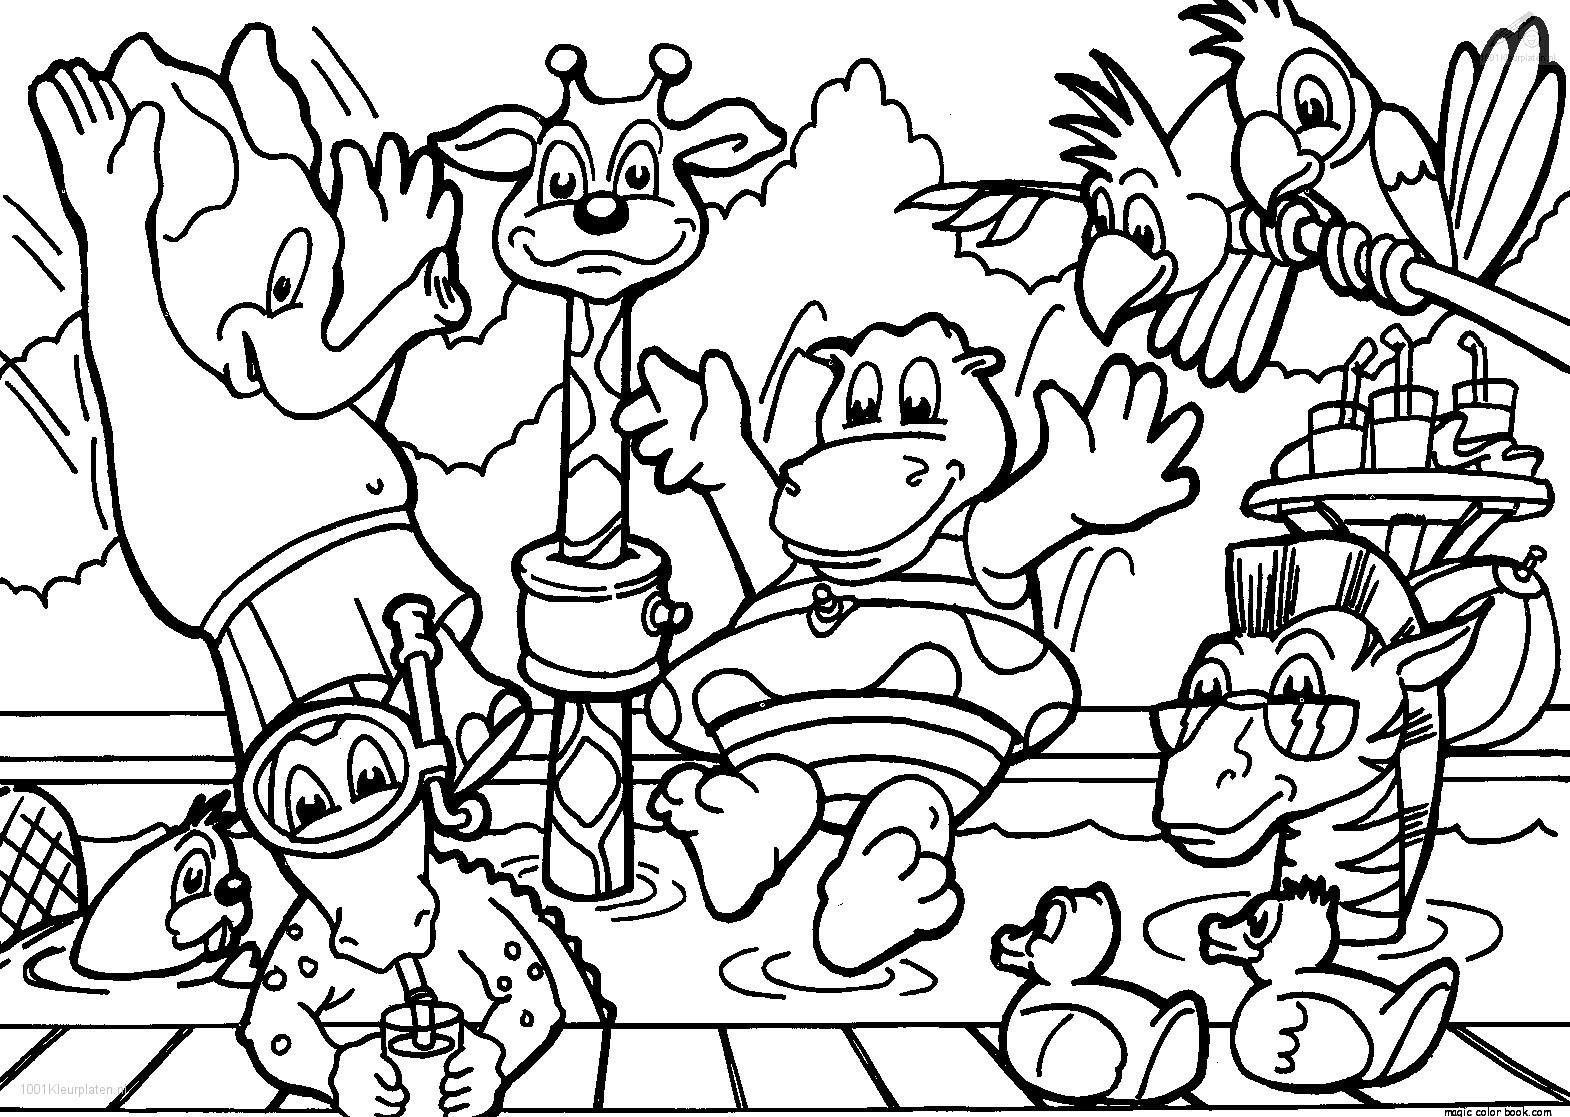 Zoo animal coloring pages - Http Colorings Co Zoo Animals Coloring Pages